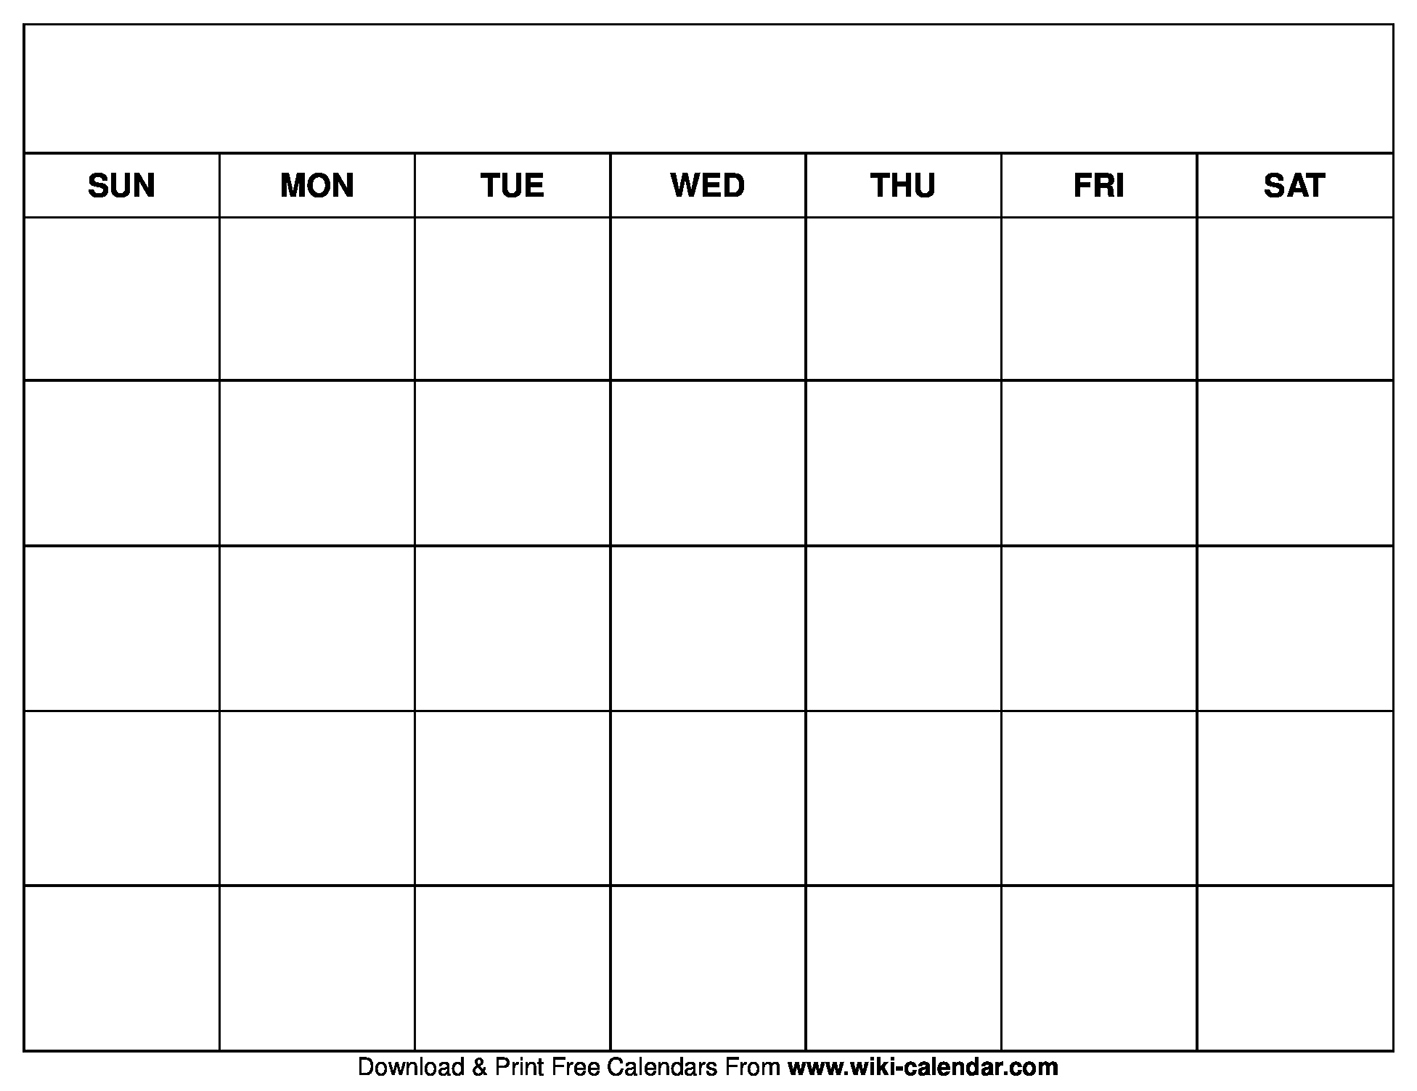 Catch Print Free Calendars Without Downloading